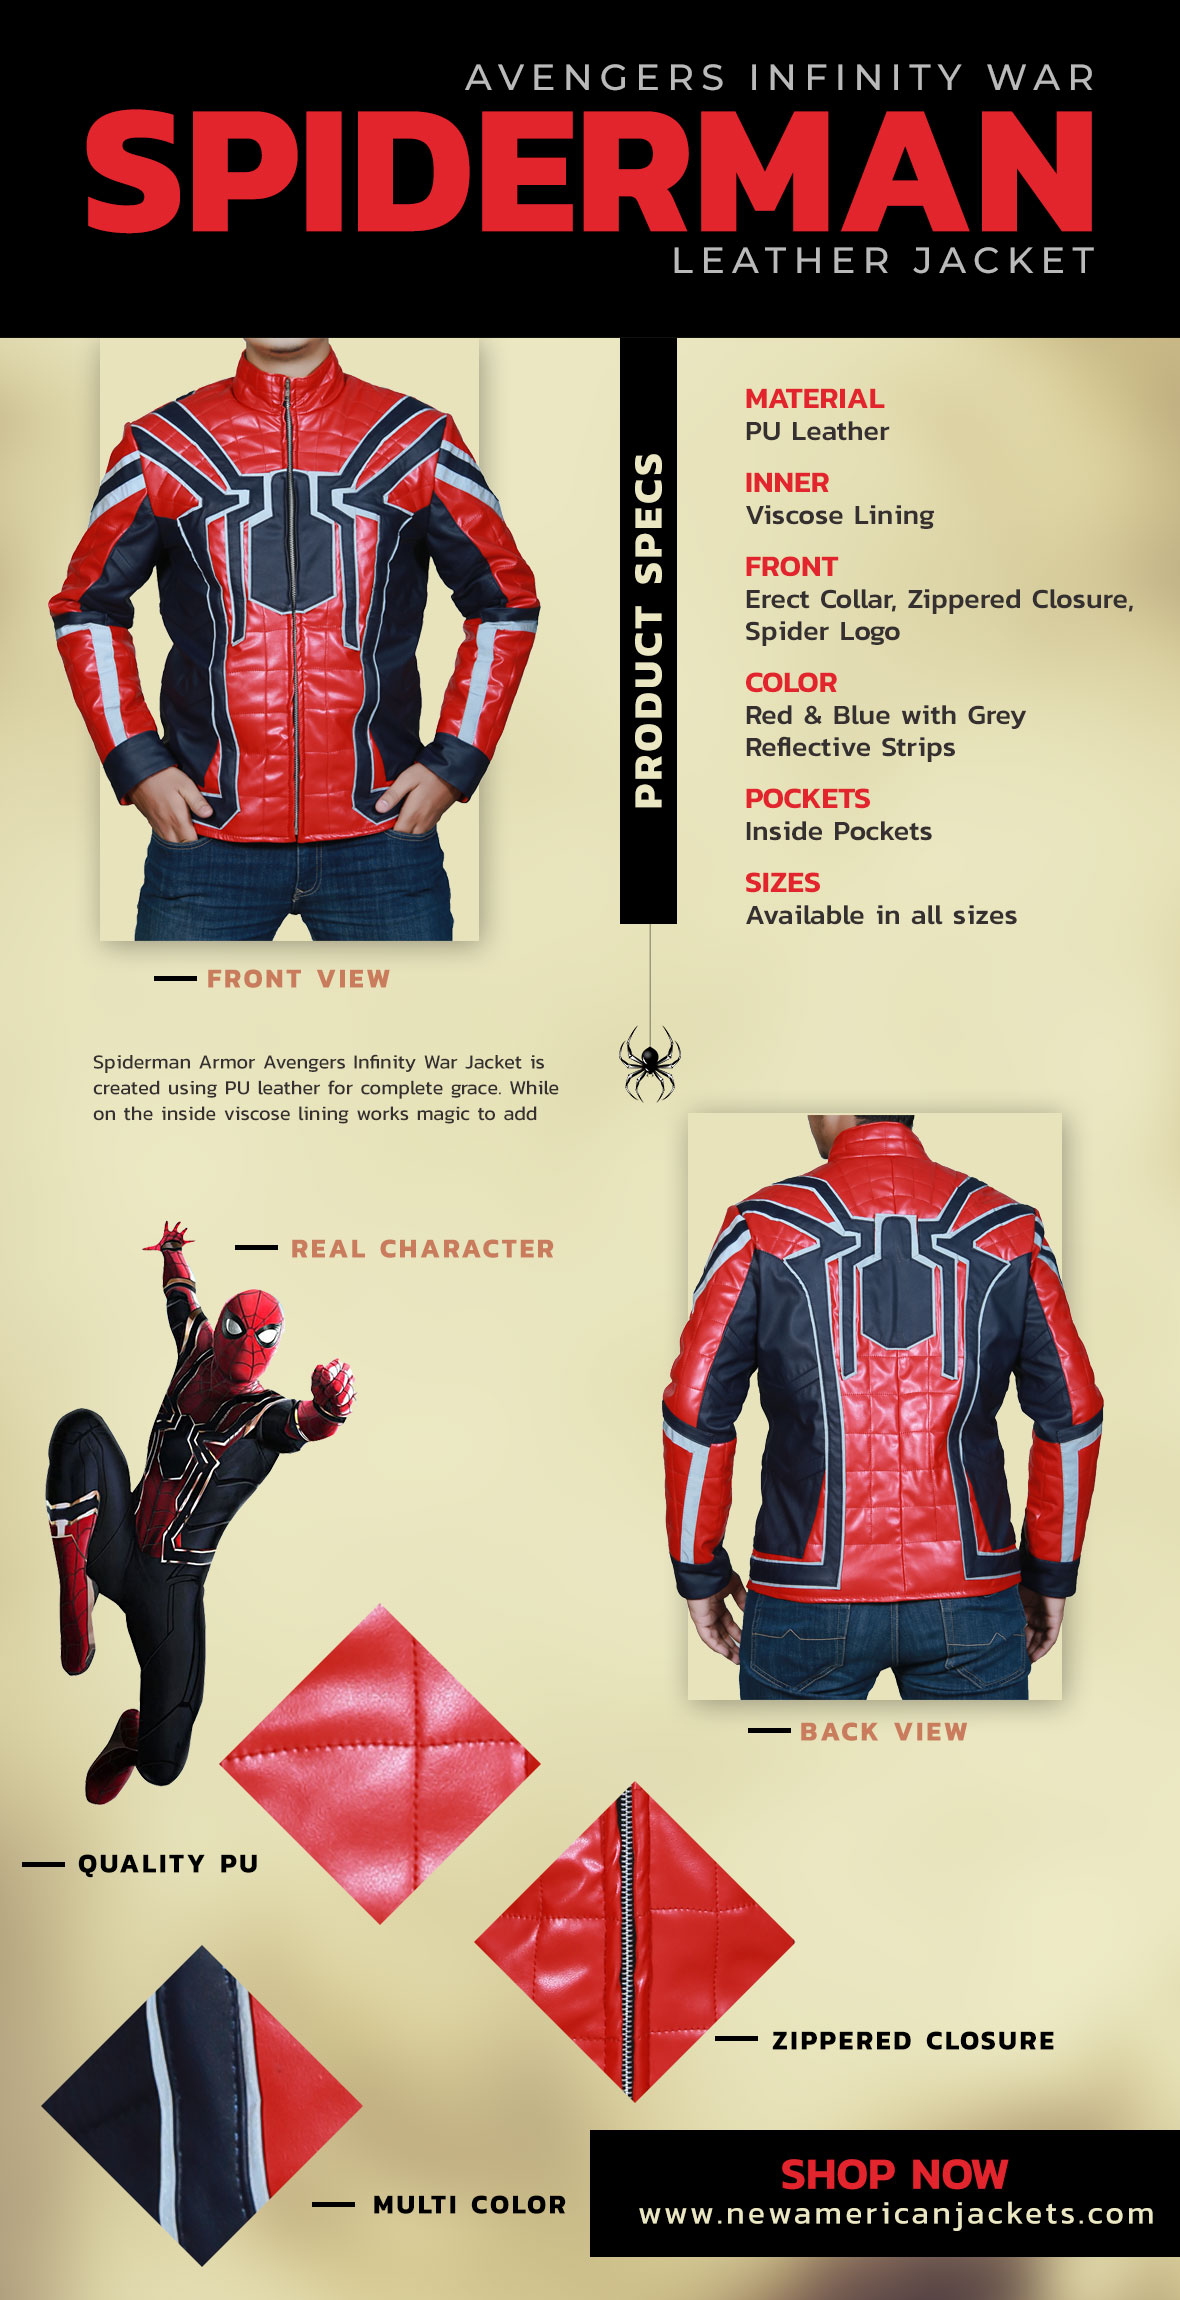 Spiderman Armor Avengers Infinity War Jacket Infographic